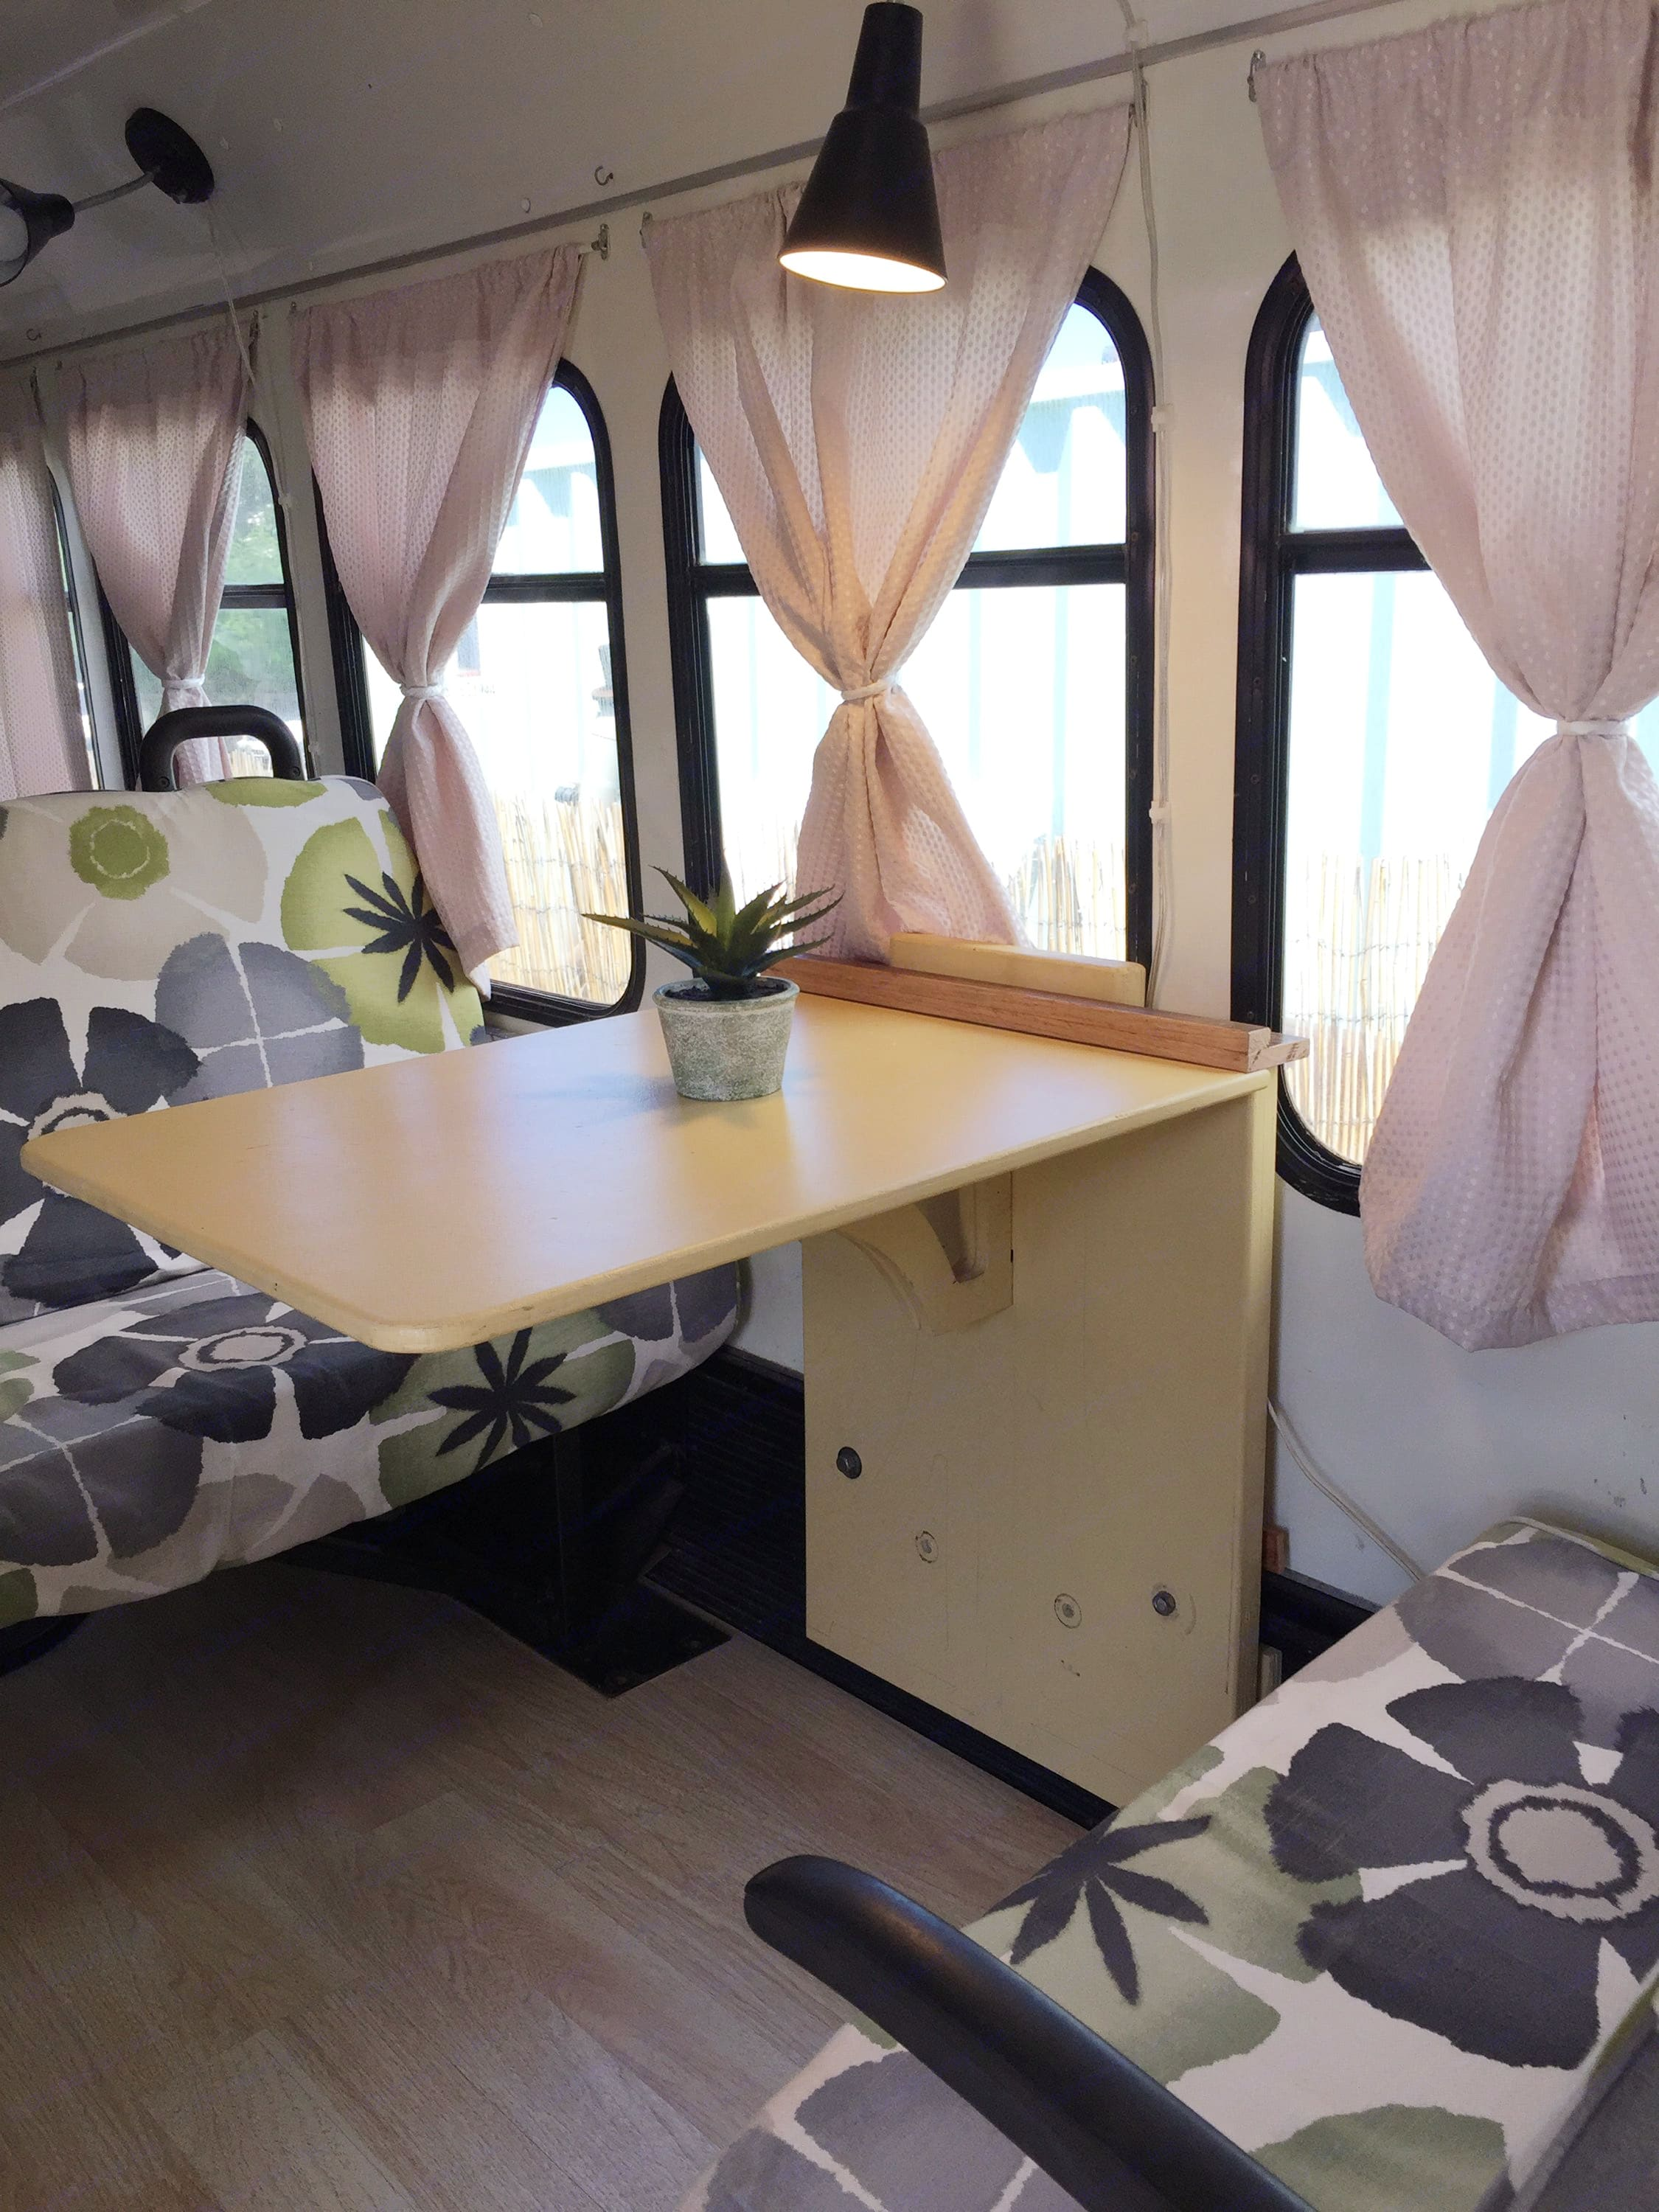 Dining and sitting area. Ford Ford E350 2008